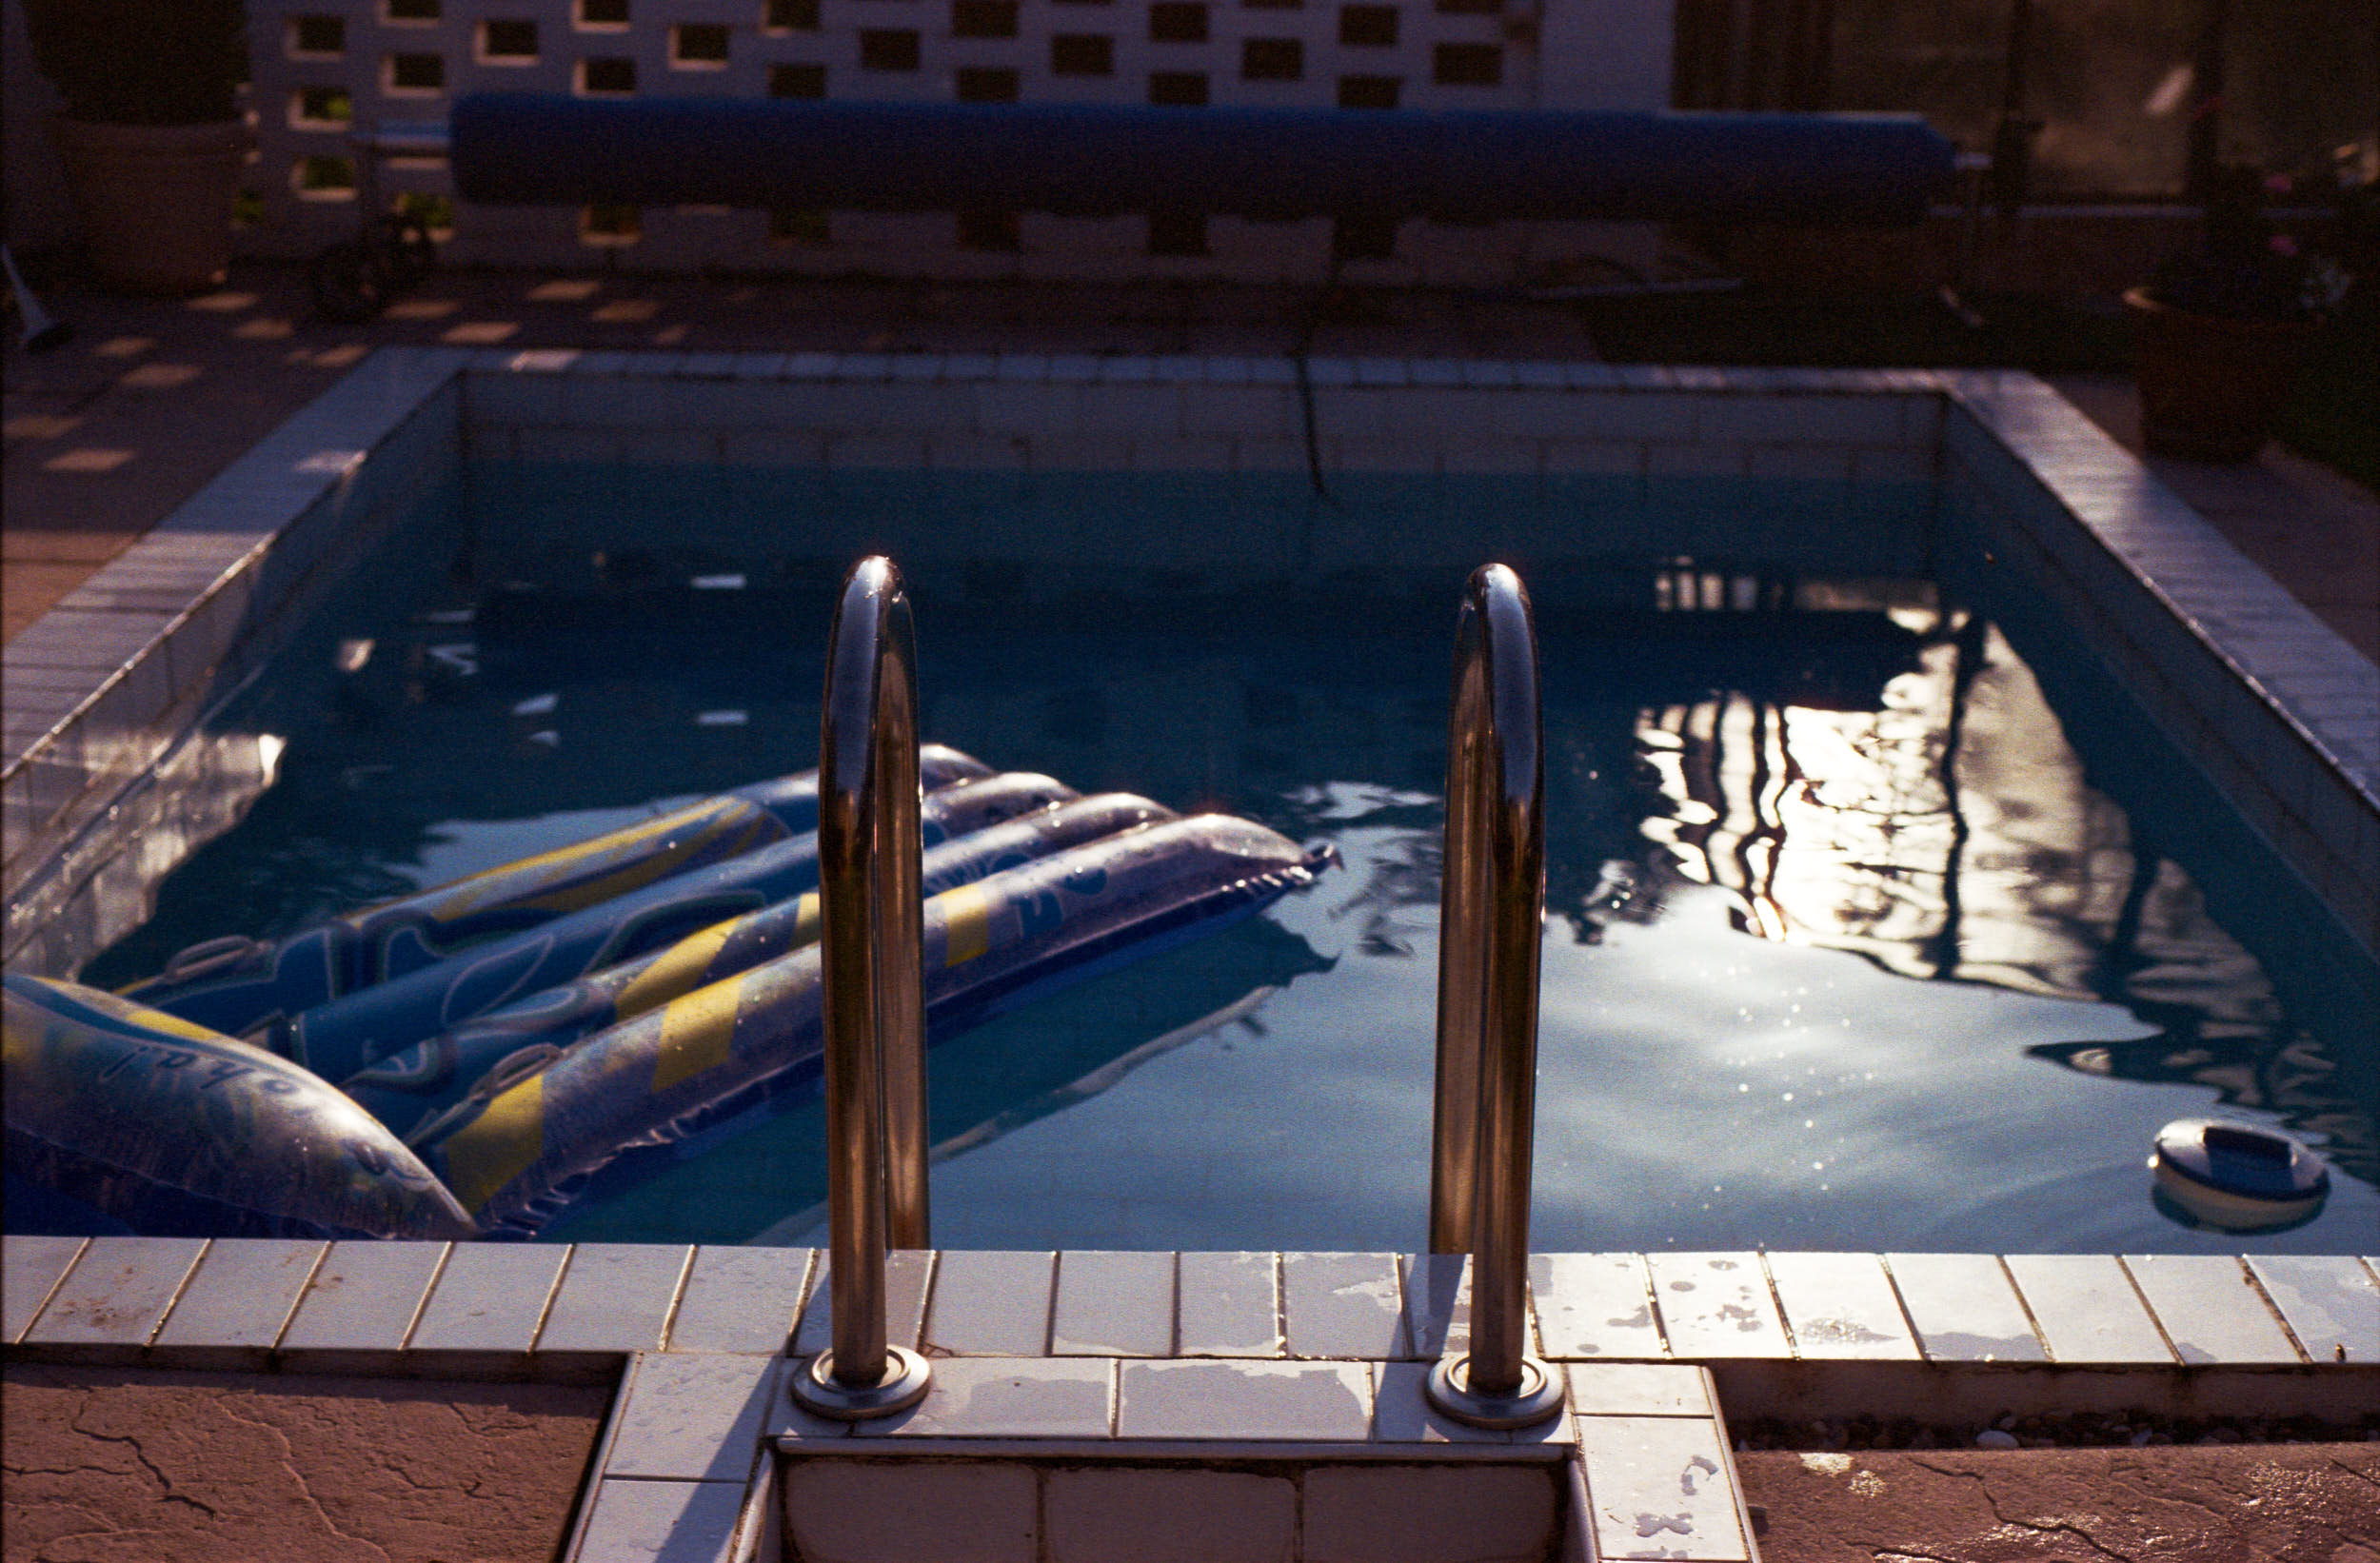 Summer vibes. Swimming pool in the evening light.